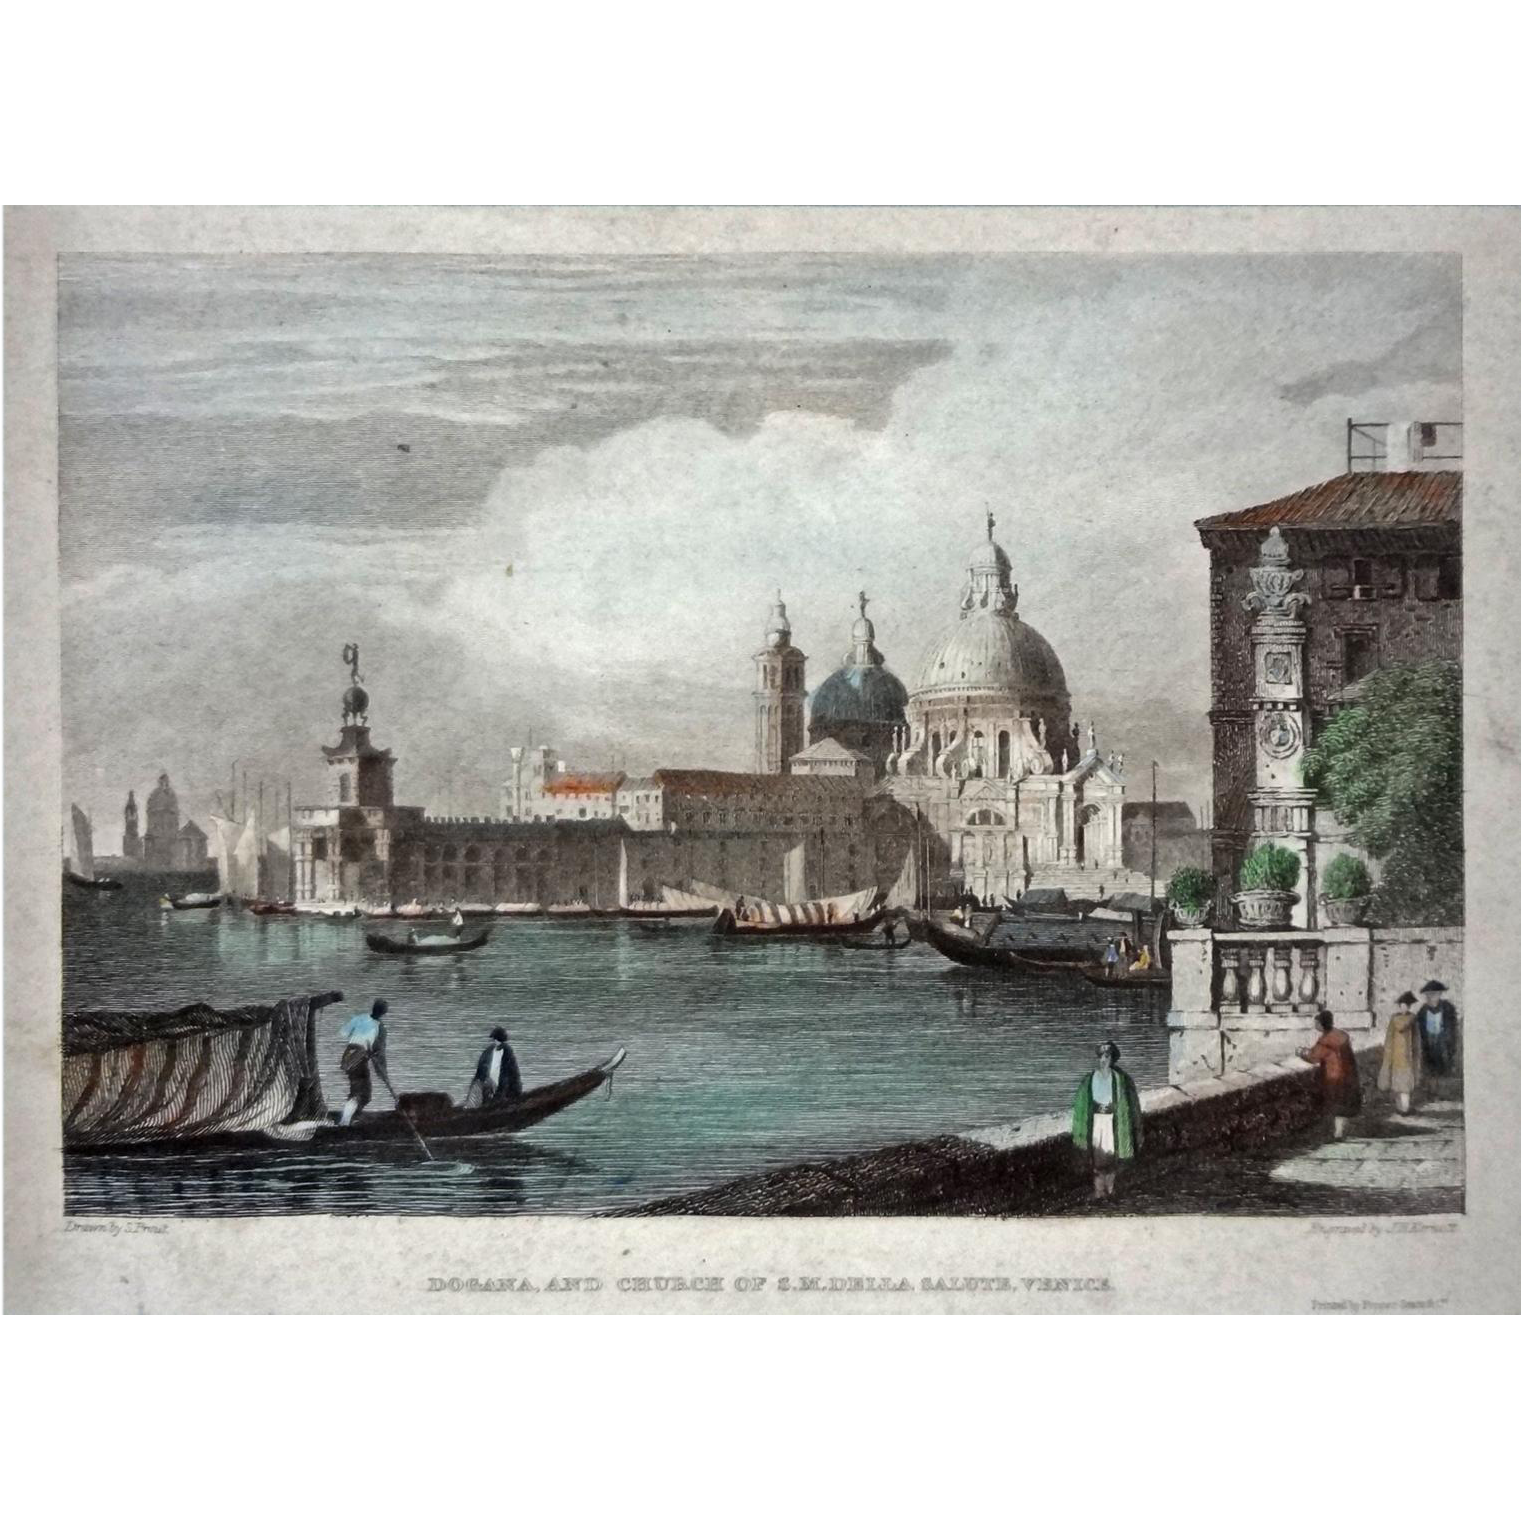 Antique Venice Engraving Dogana, and Church of Santa Maria Della Salute by J. H. Kernott after S. Prout - 19th Century, England